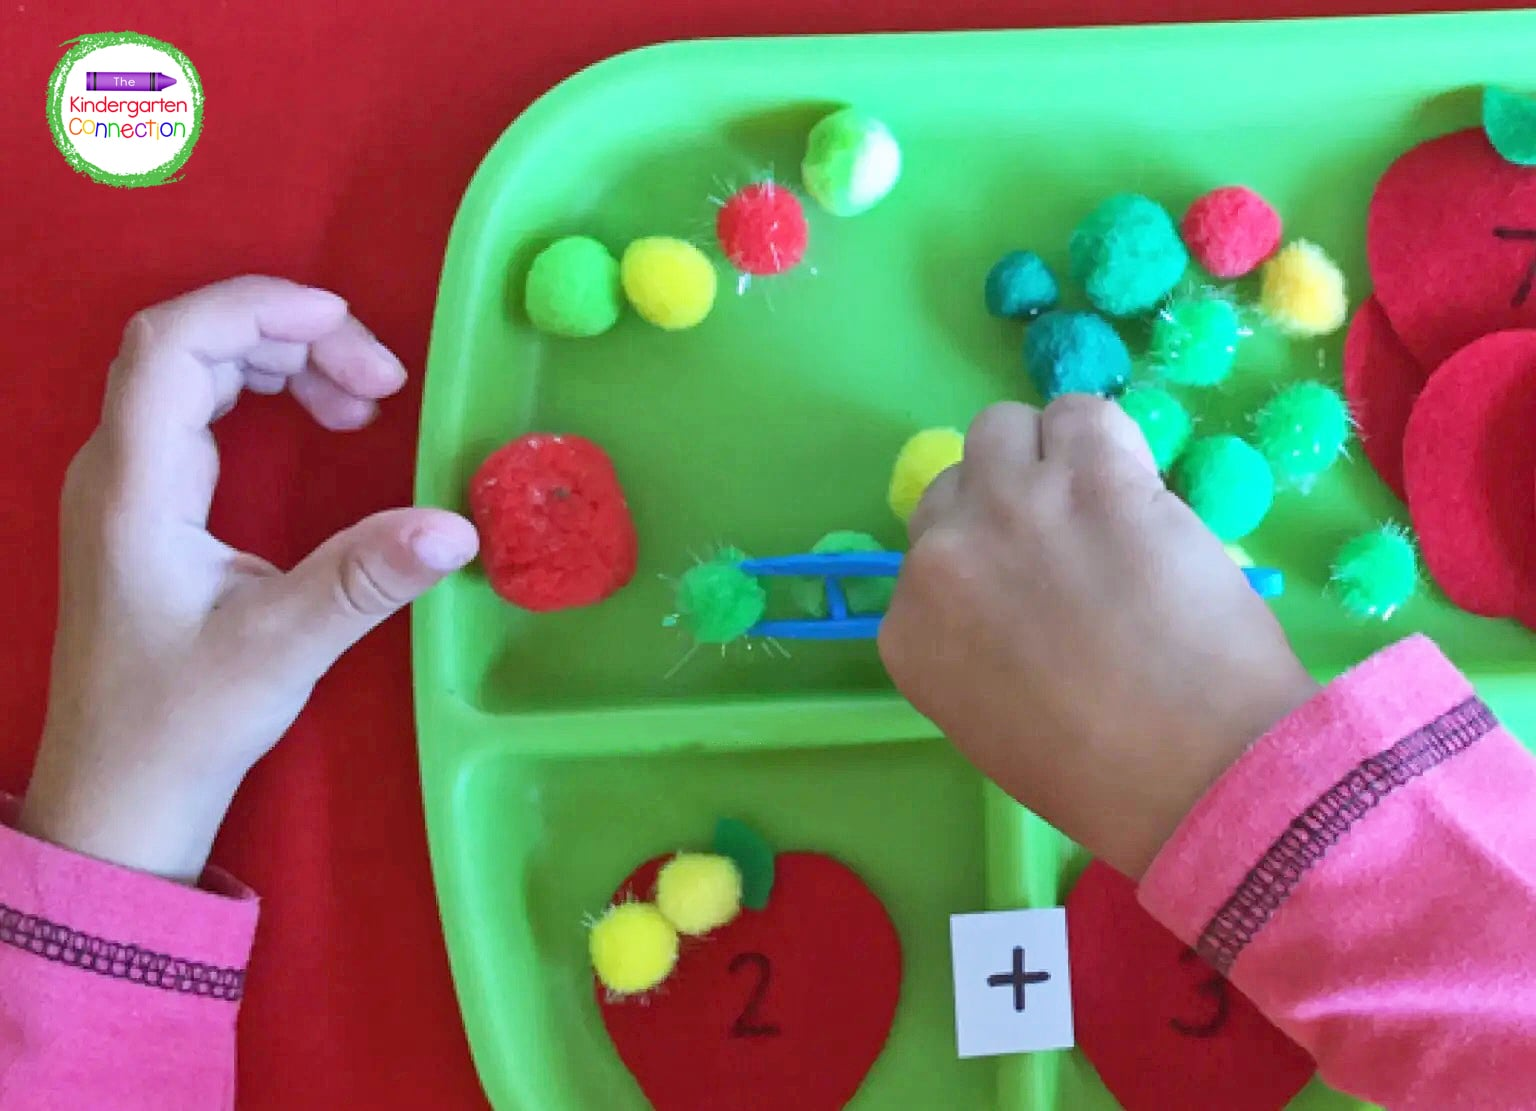 The jumbo tweezers provide great fine motor practice as kids use them to pick up the pom poms.